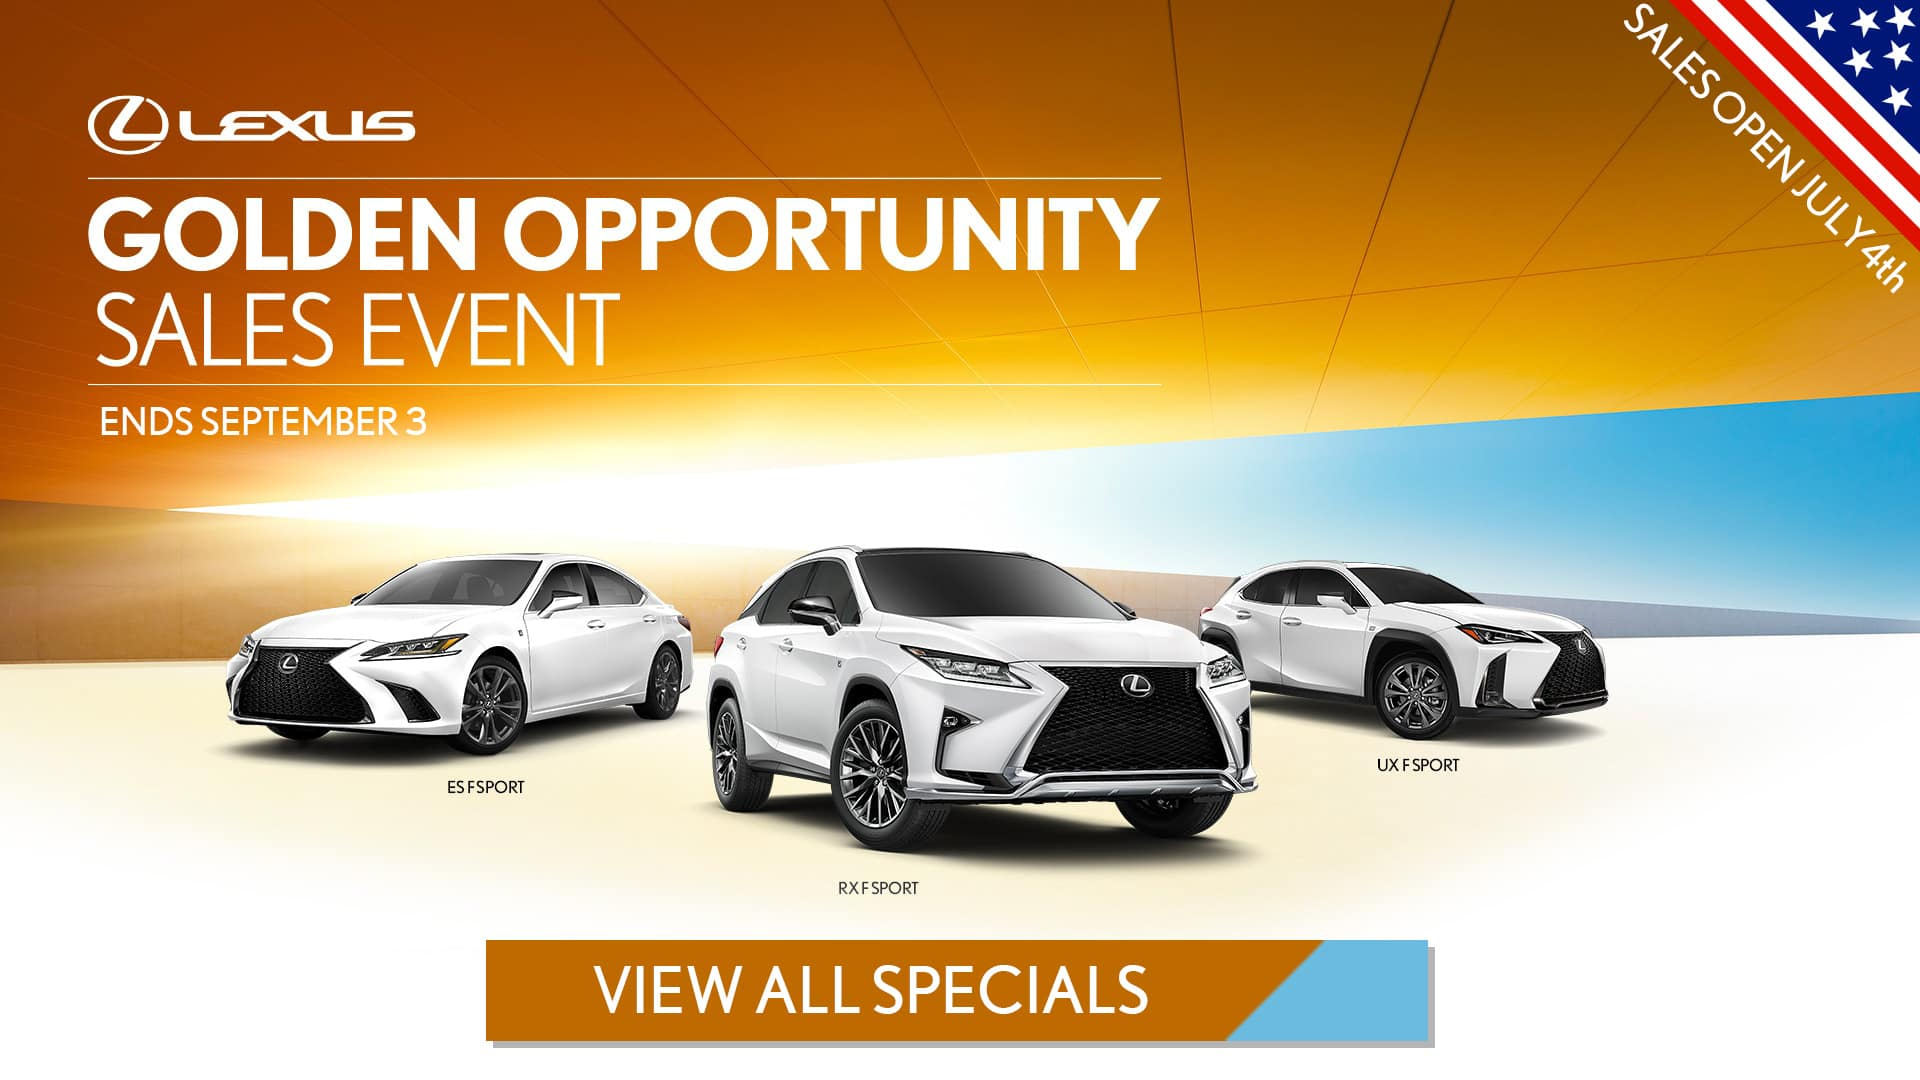 Lexus of Pleasanton July 4th Golden Opportunity Sales Event